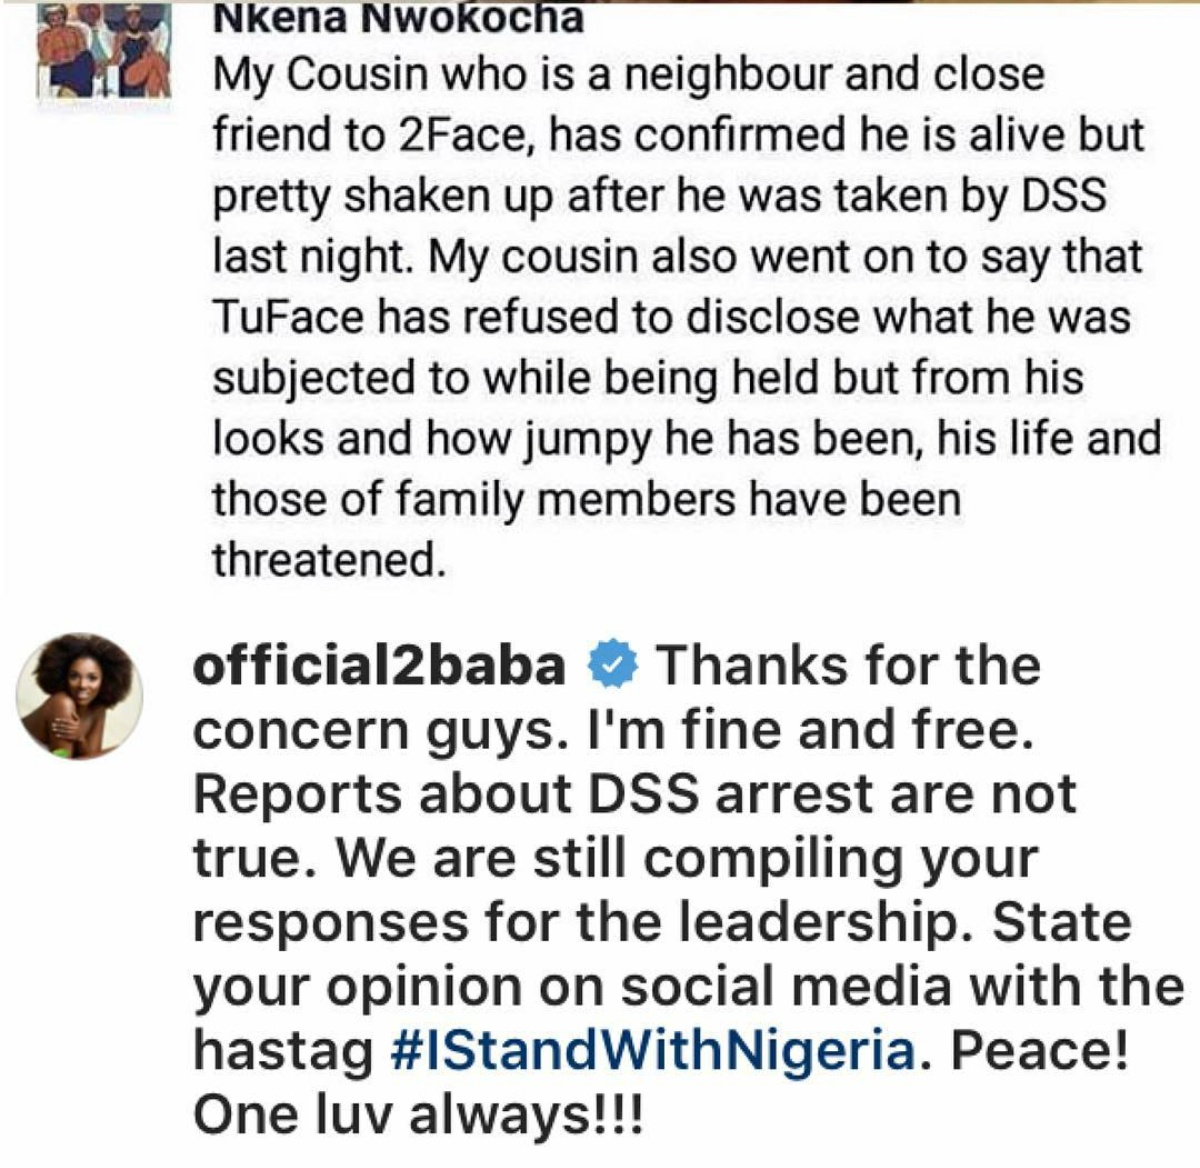 2Face Denies Being Arrested By The DSS